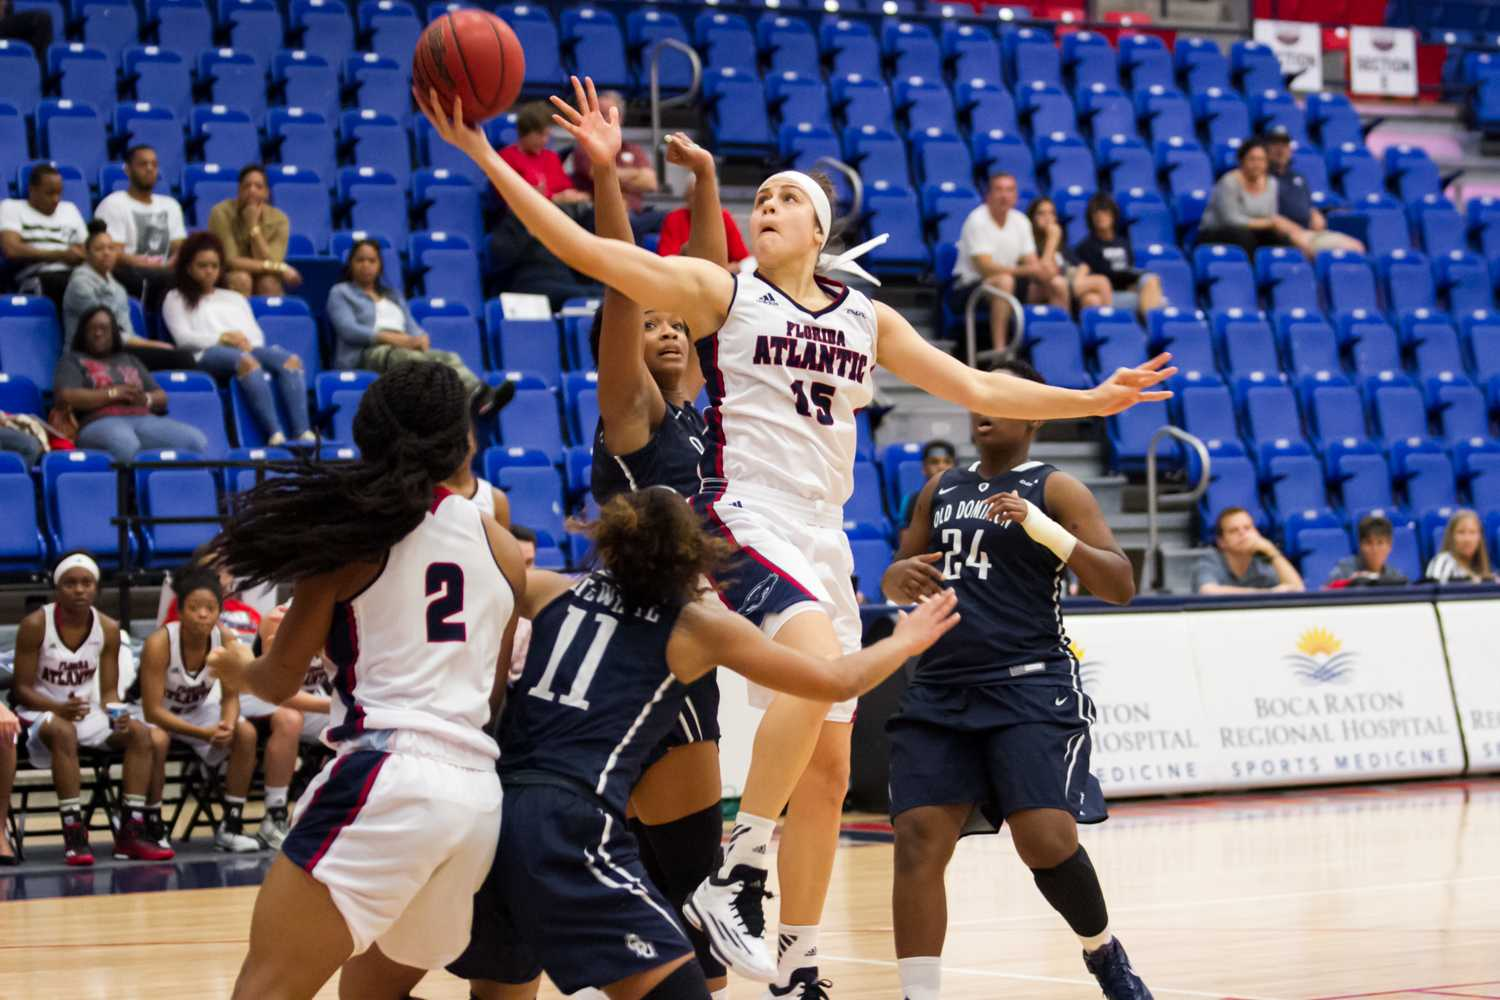 Cedeno attempts a shot in traffic. She made just one of her night shots in the Owls' loss to ODU on Jan. 31.